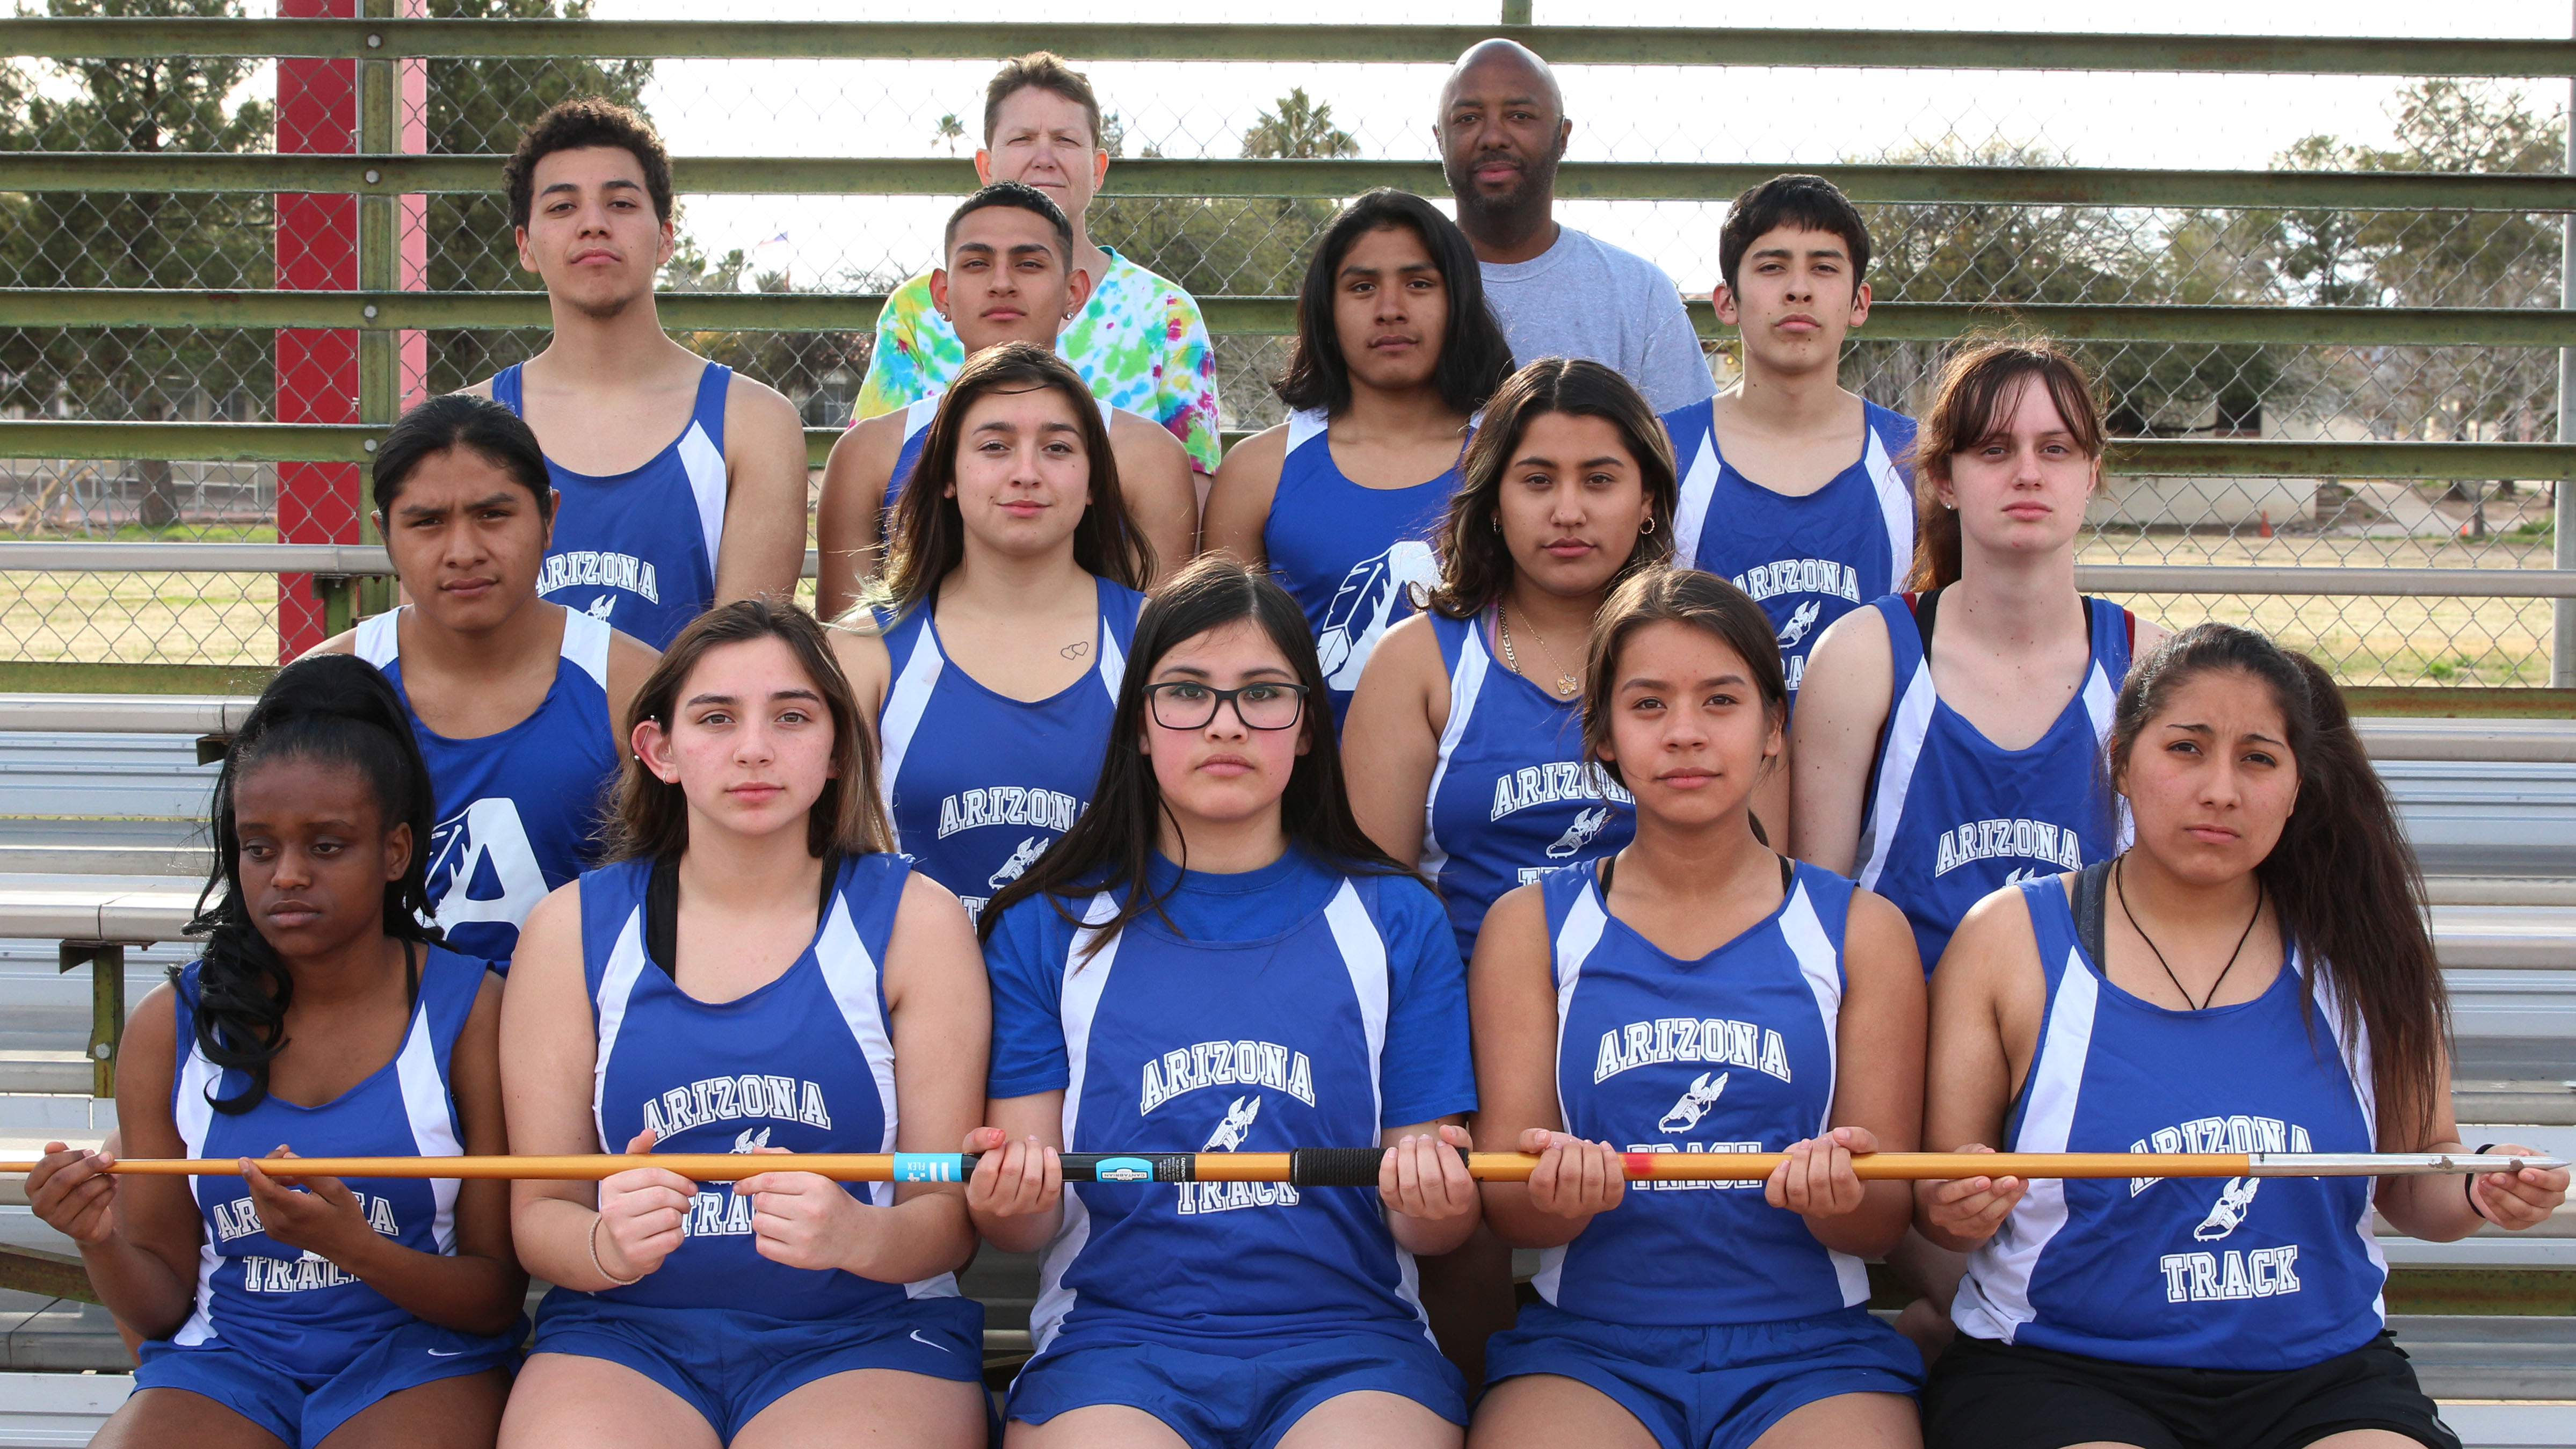 Group photo of the high school track and field team 2019.